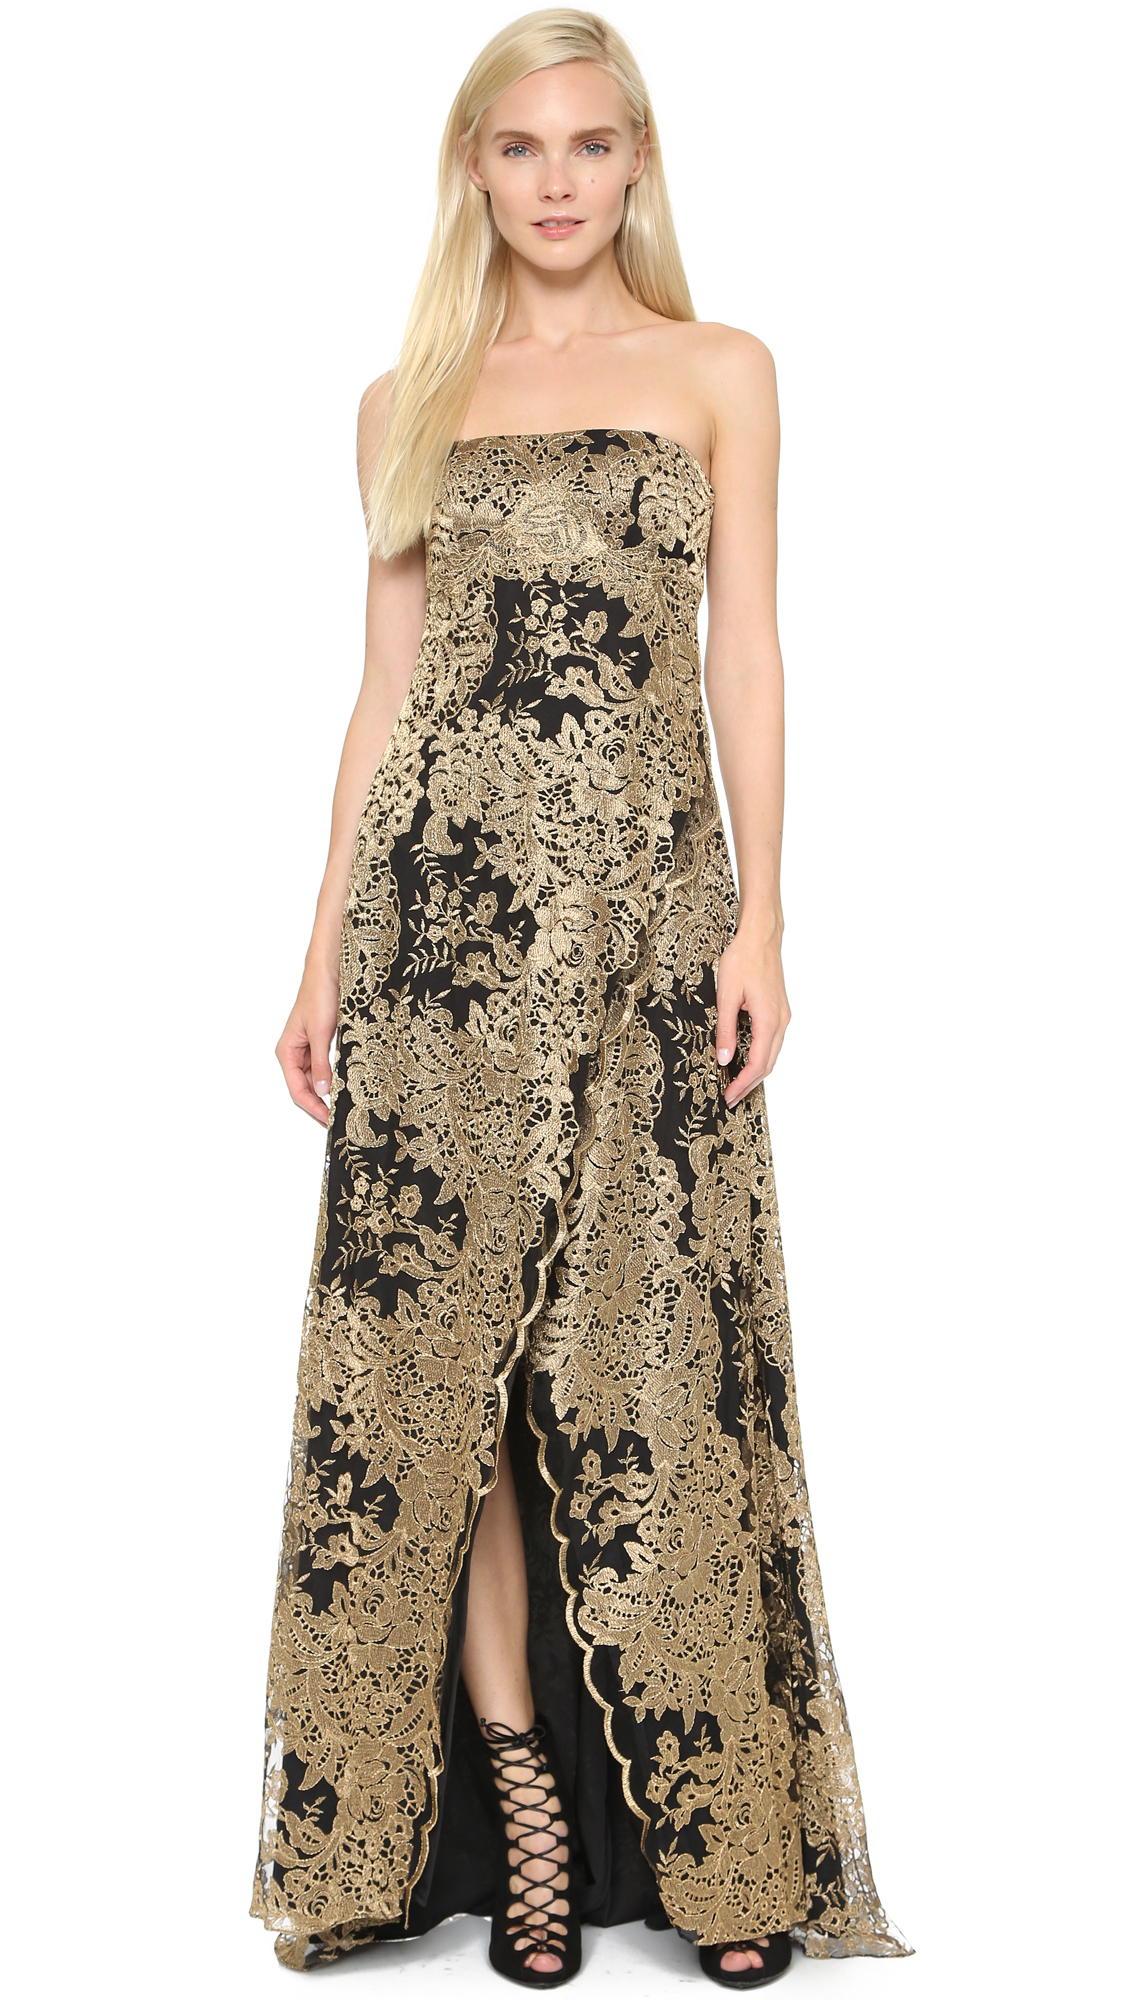 Lyst - Notte By Marchesa Strapless Gown - Black/gold in Black